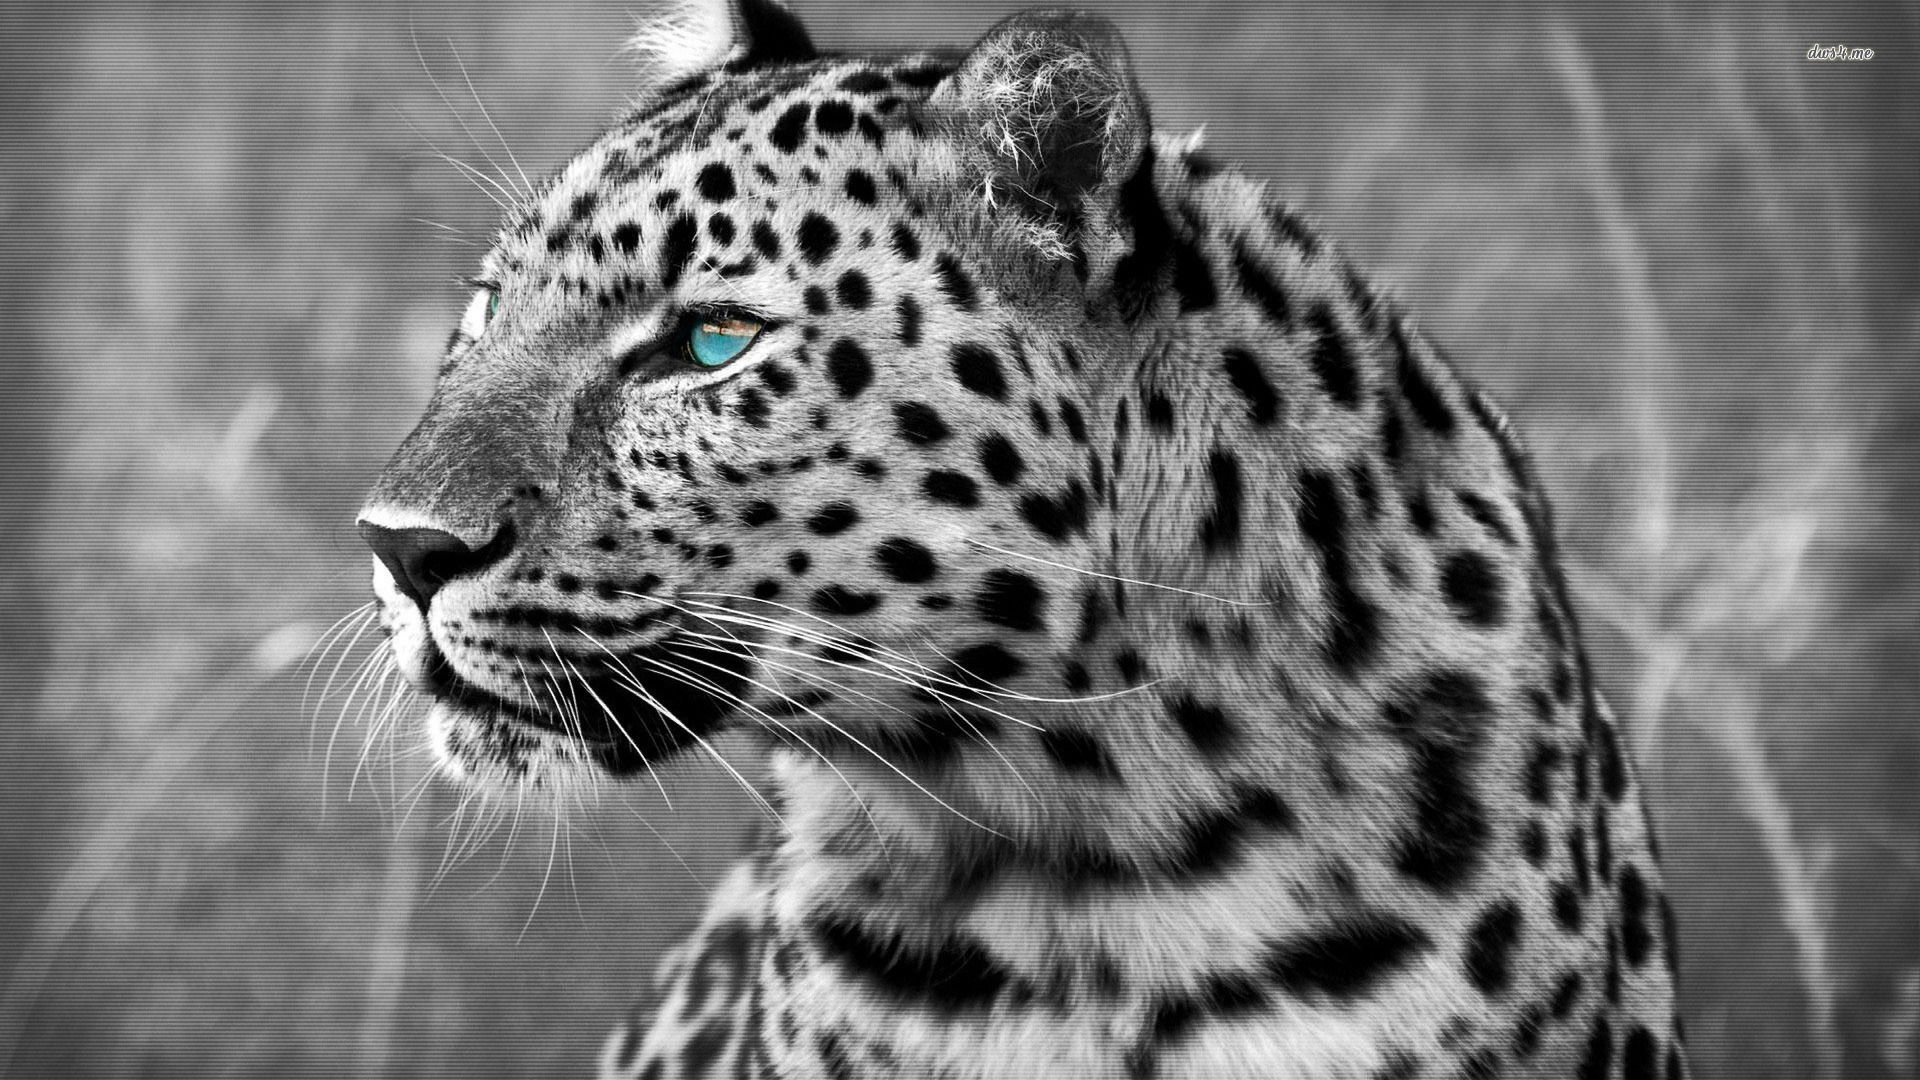 Snow Leopard Wallpaper Picture Leopard Snow Leopard Face Baby 1920x1080